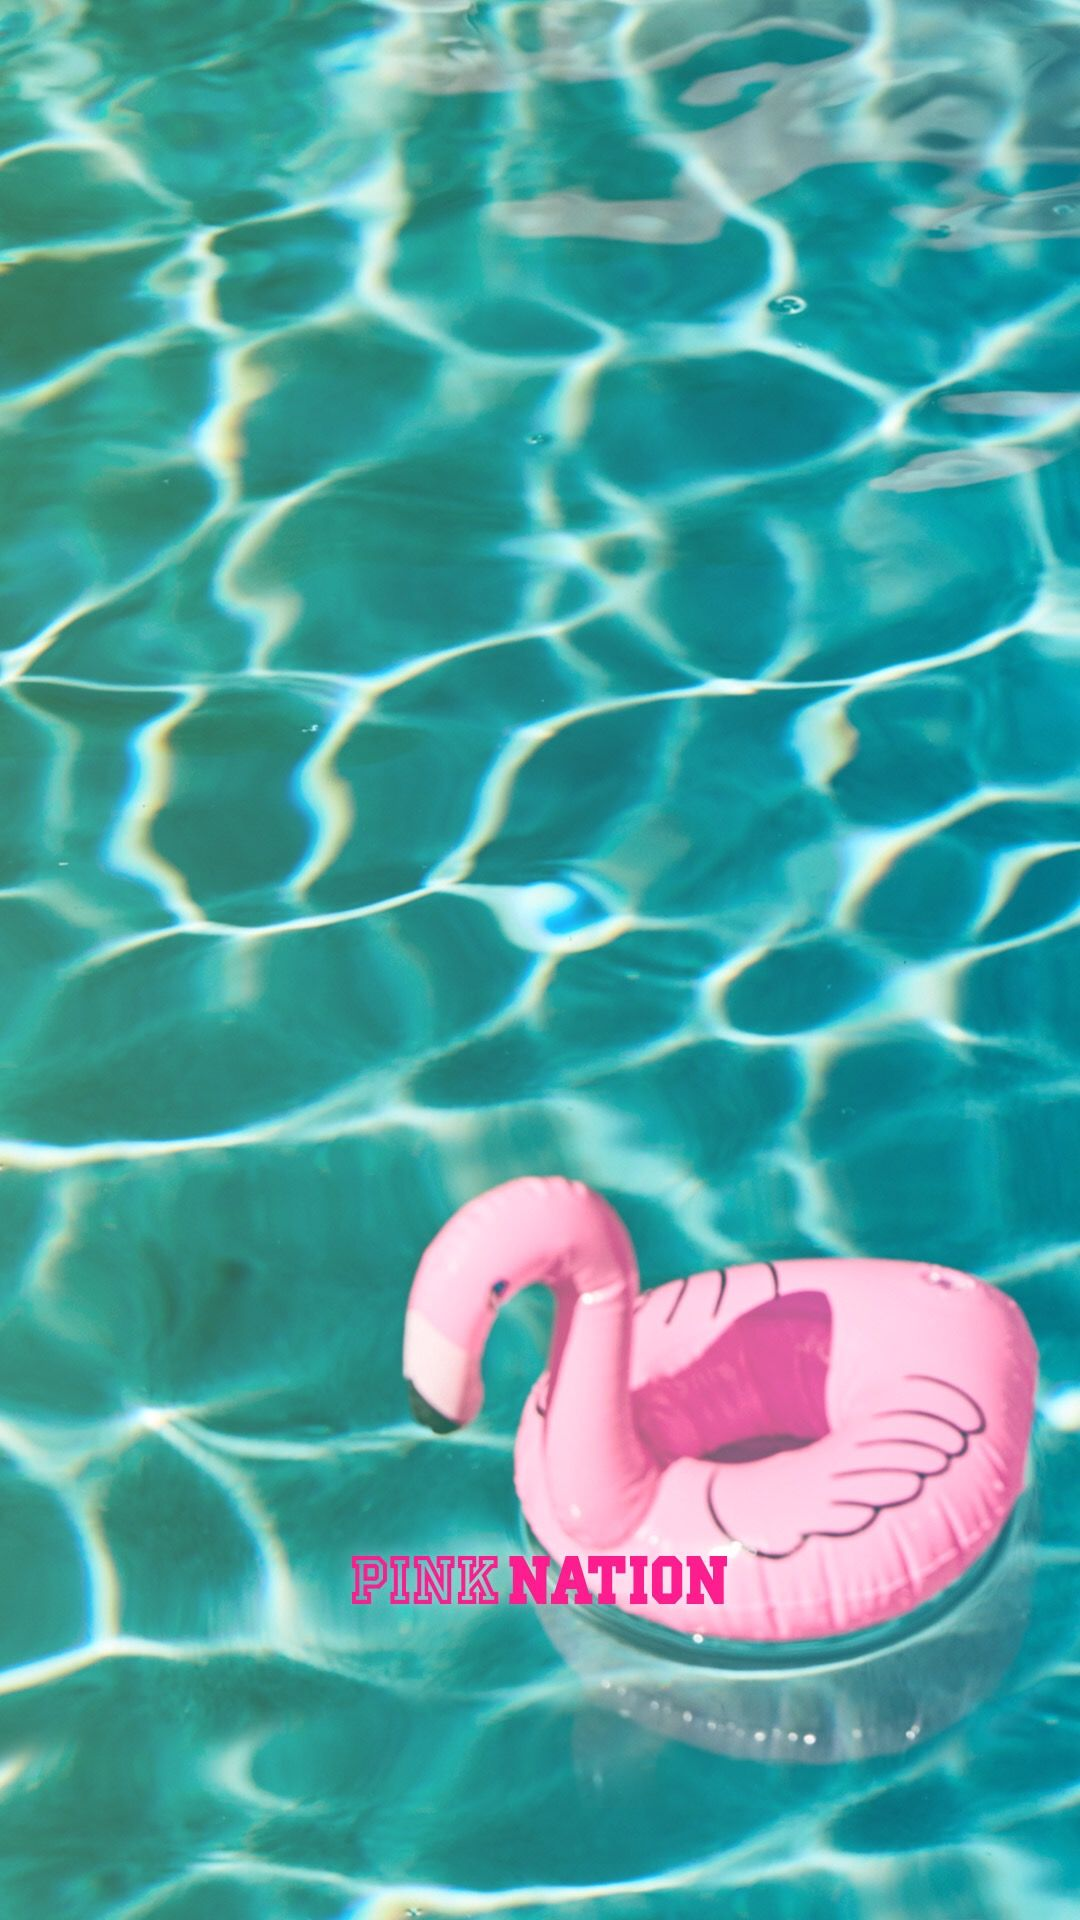 4ec8955b3e Victoria s Secret pink wallpaper iPhone background nation 2018 spring break  flamingo pool vibes water